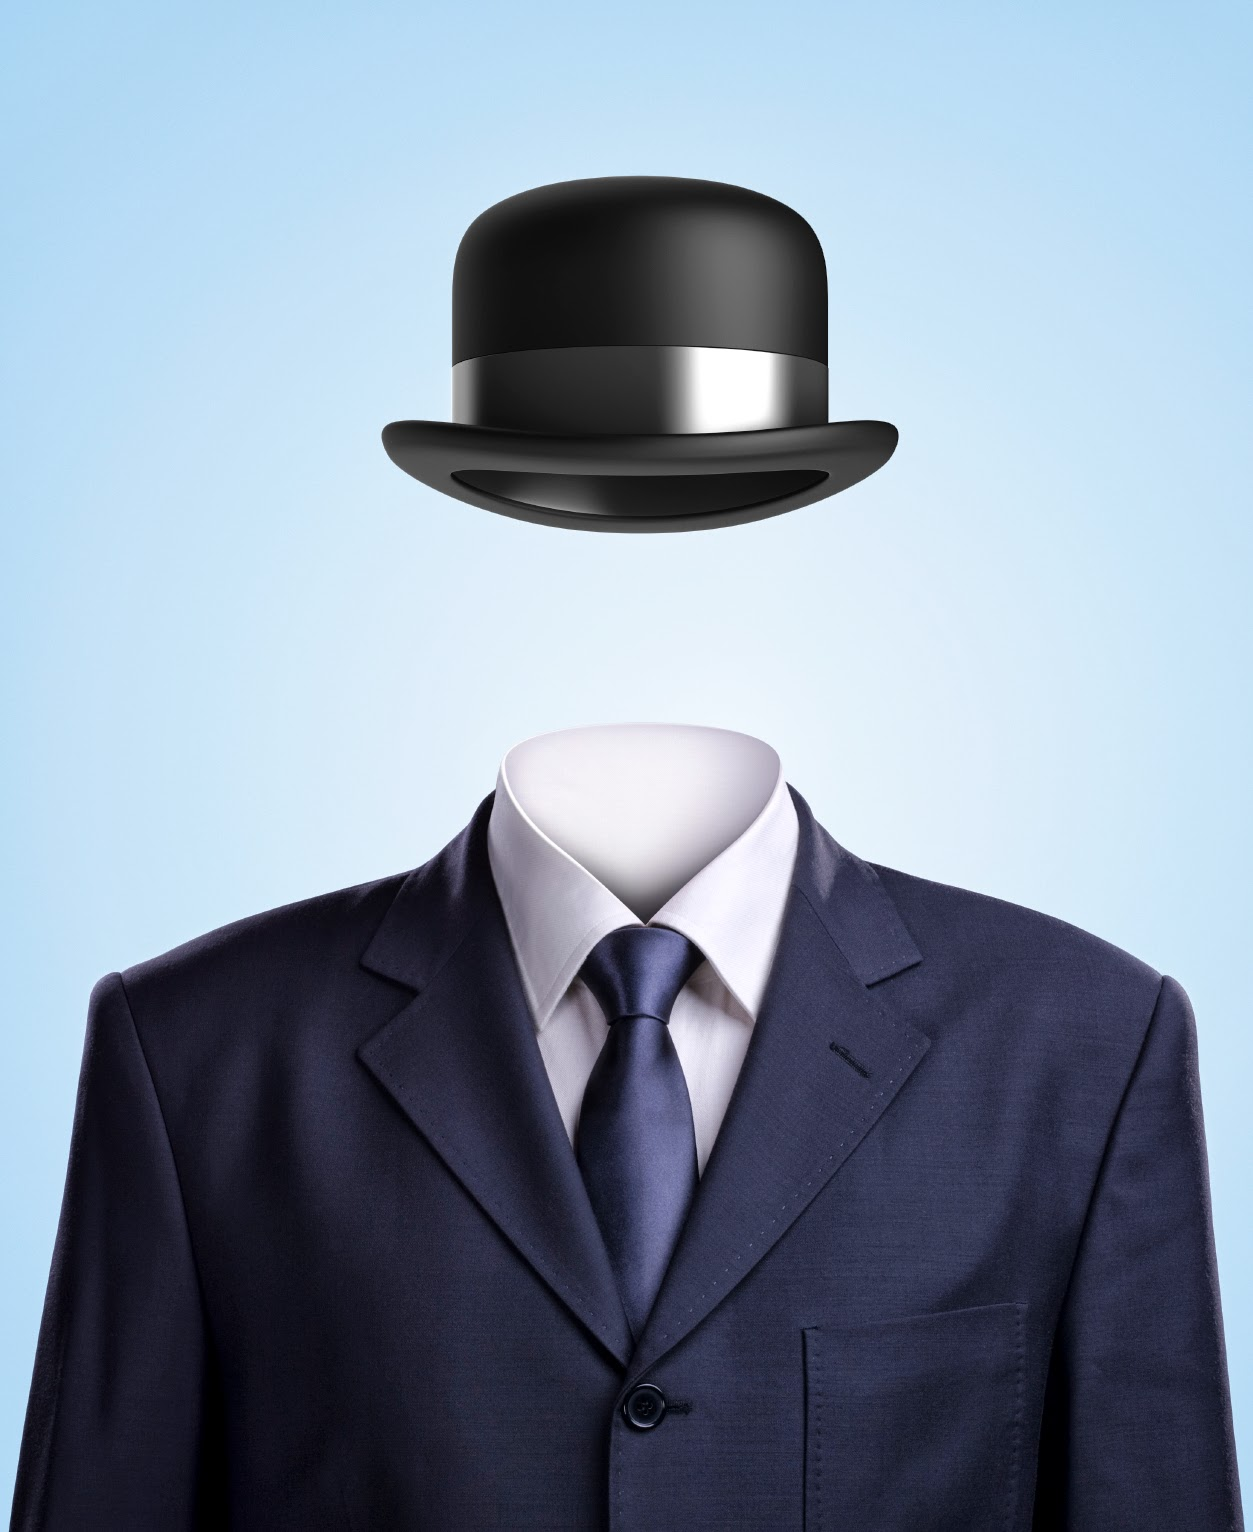 invisible man and asian american identity Find invisible man stock images in hd and millions of other royalty-free stock photos, illustrations, and vectors in the shutterstock collection thousands of new.